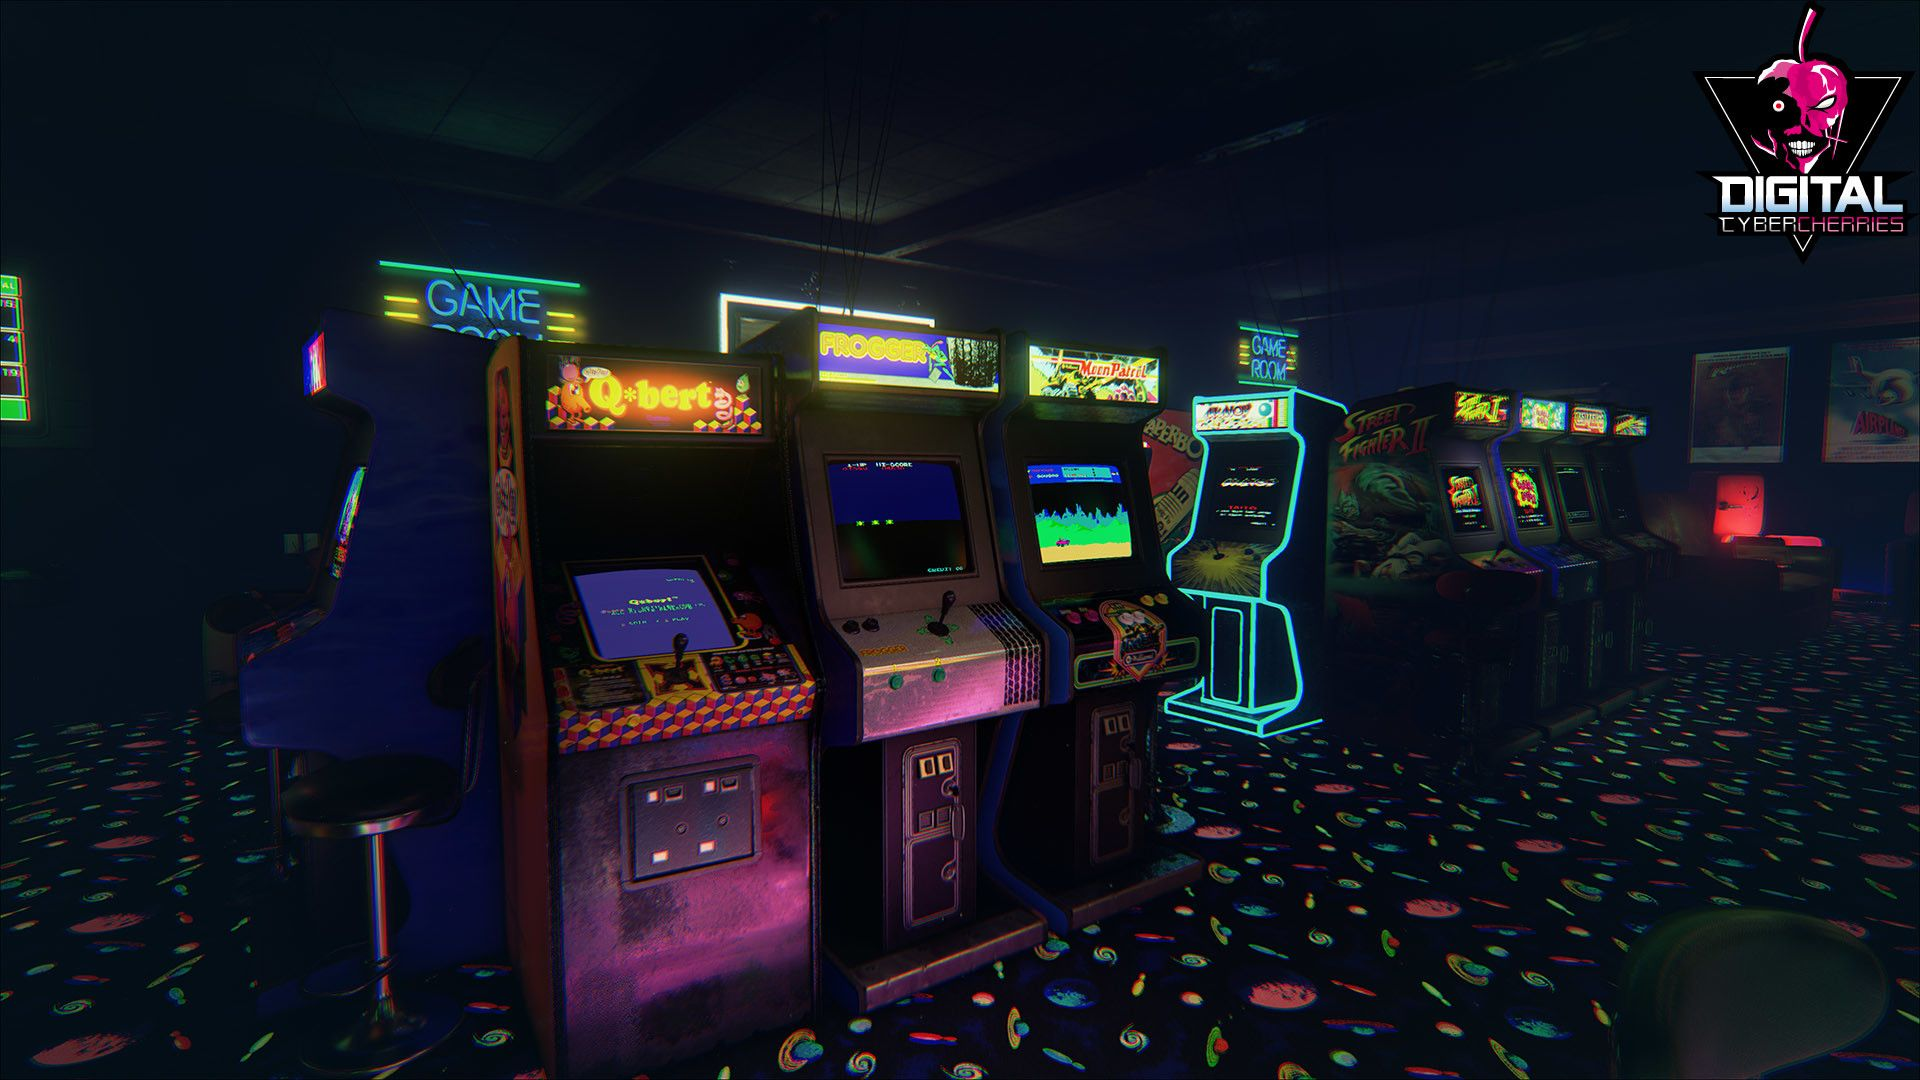 80s Arcade Wallpapers Top Free 80s Arcade Backgrounds Wallpaperaccess